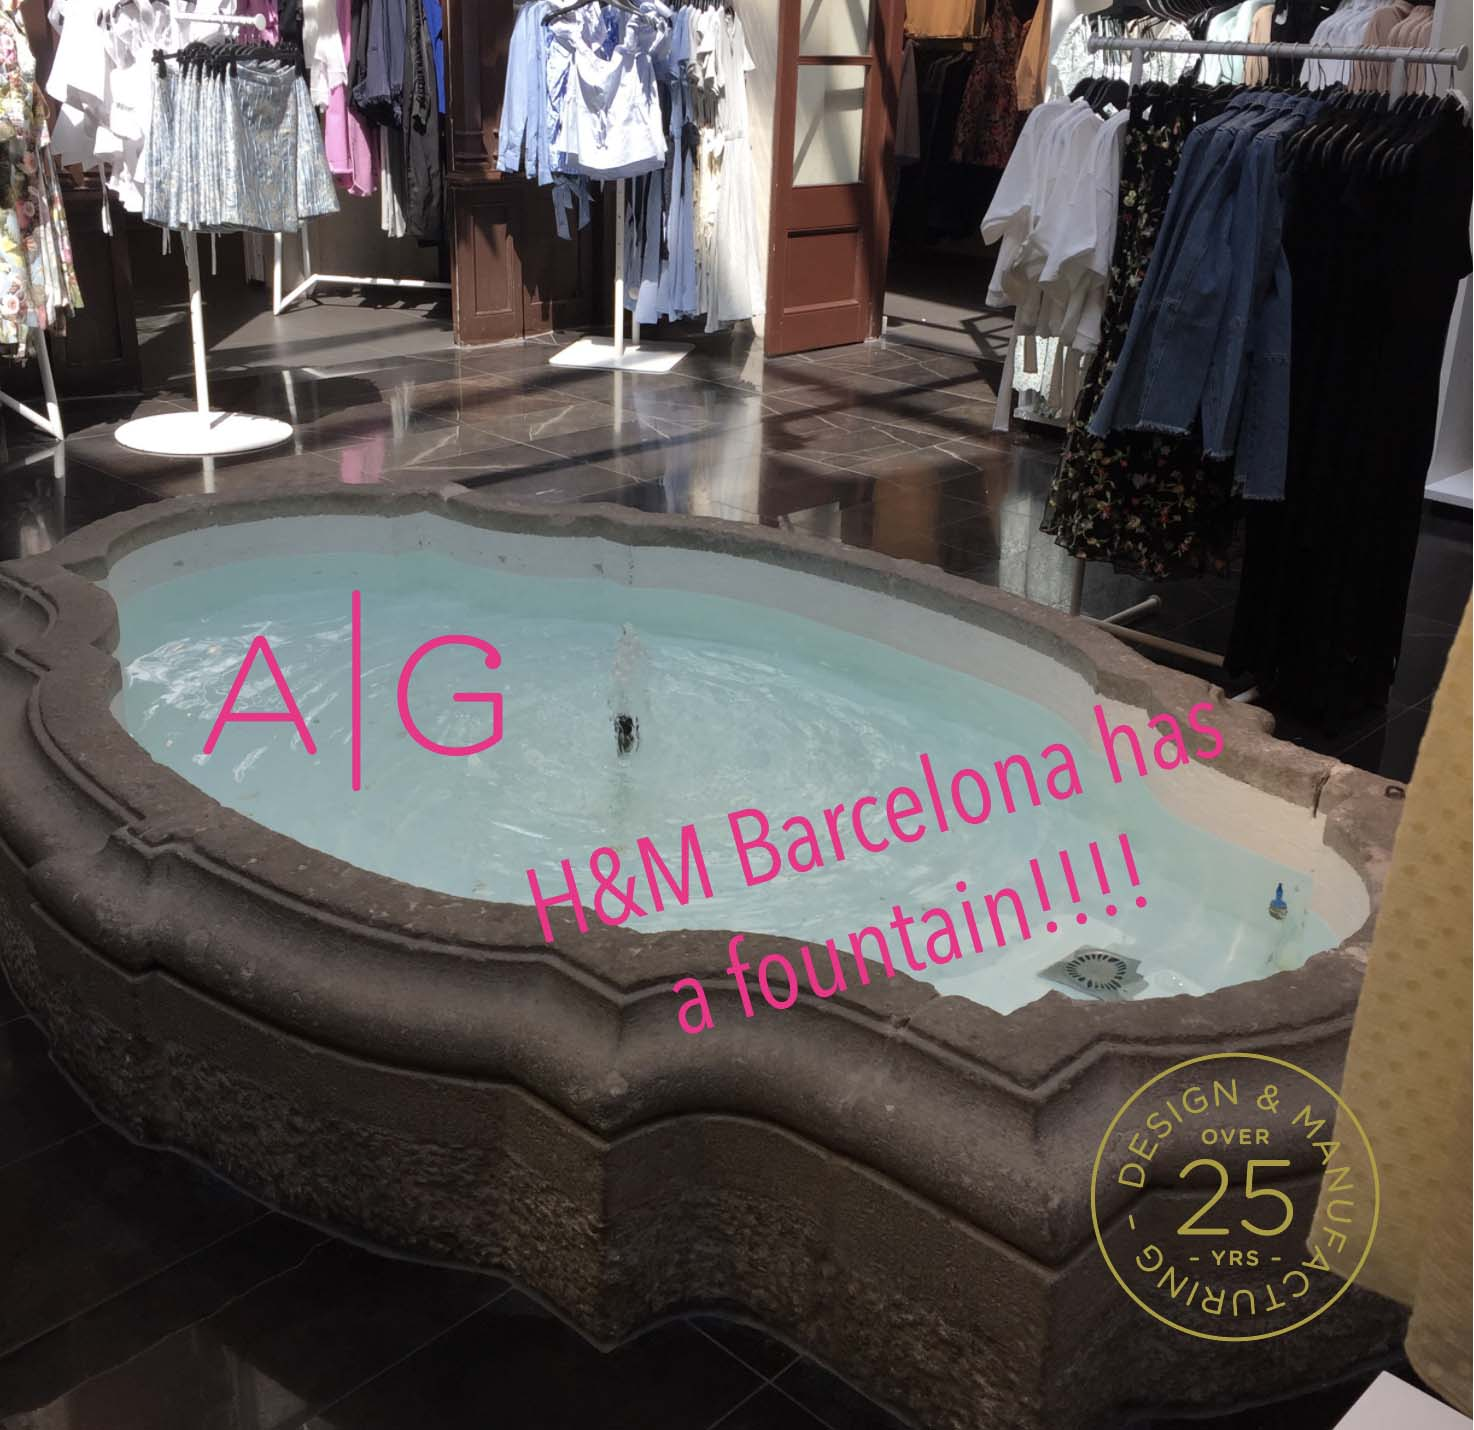 H and M Barcelona